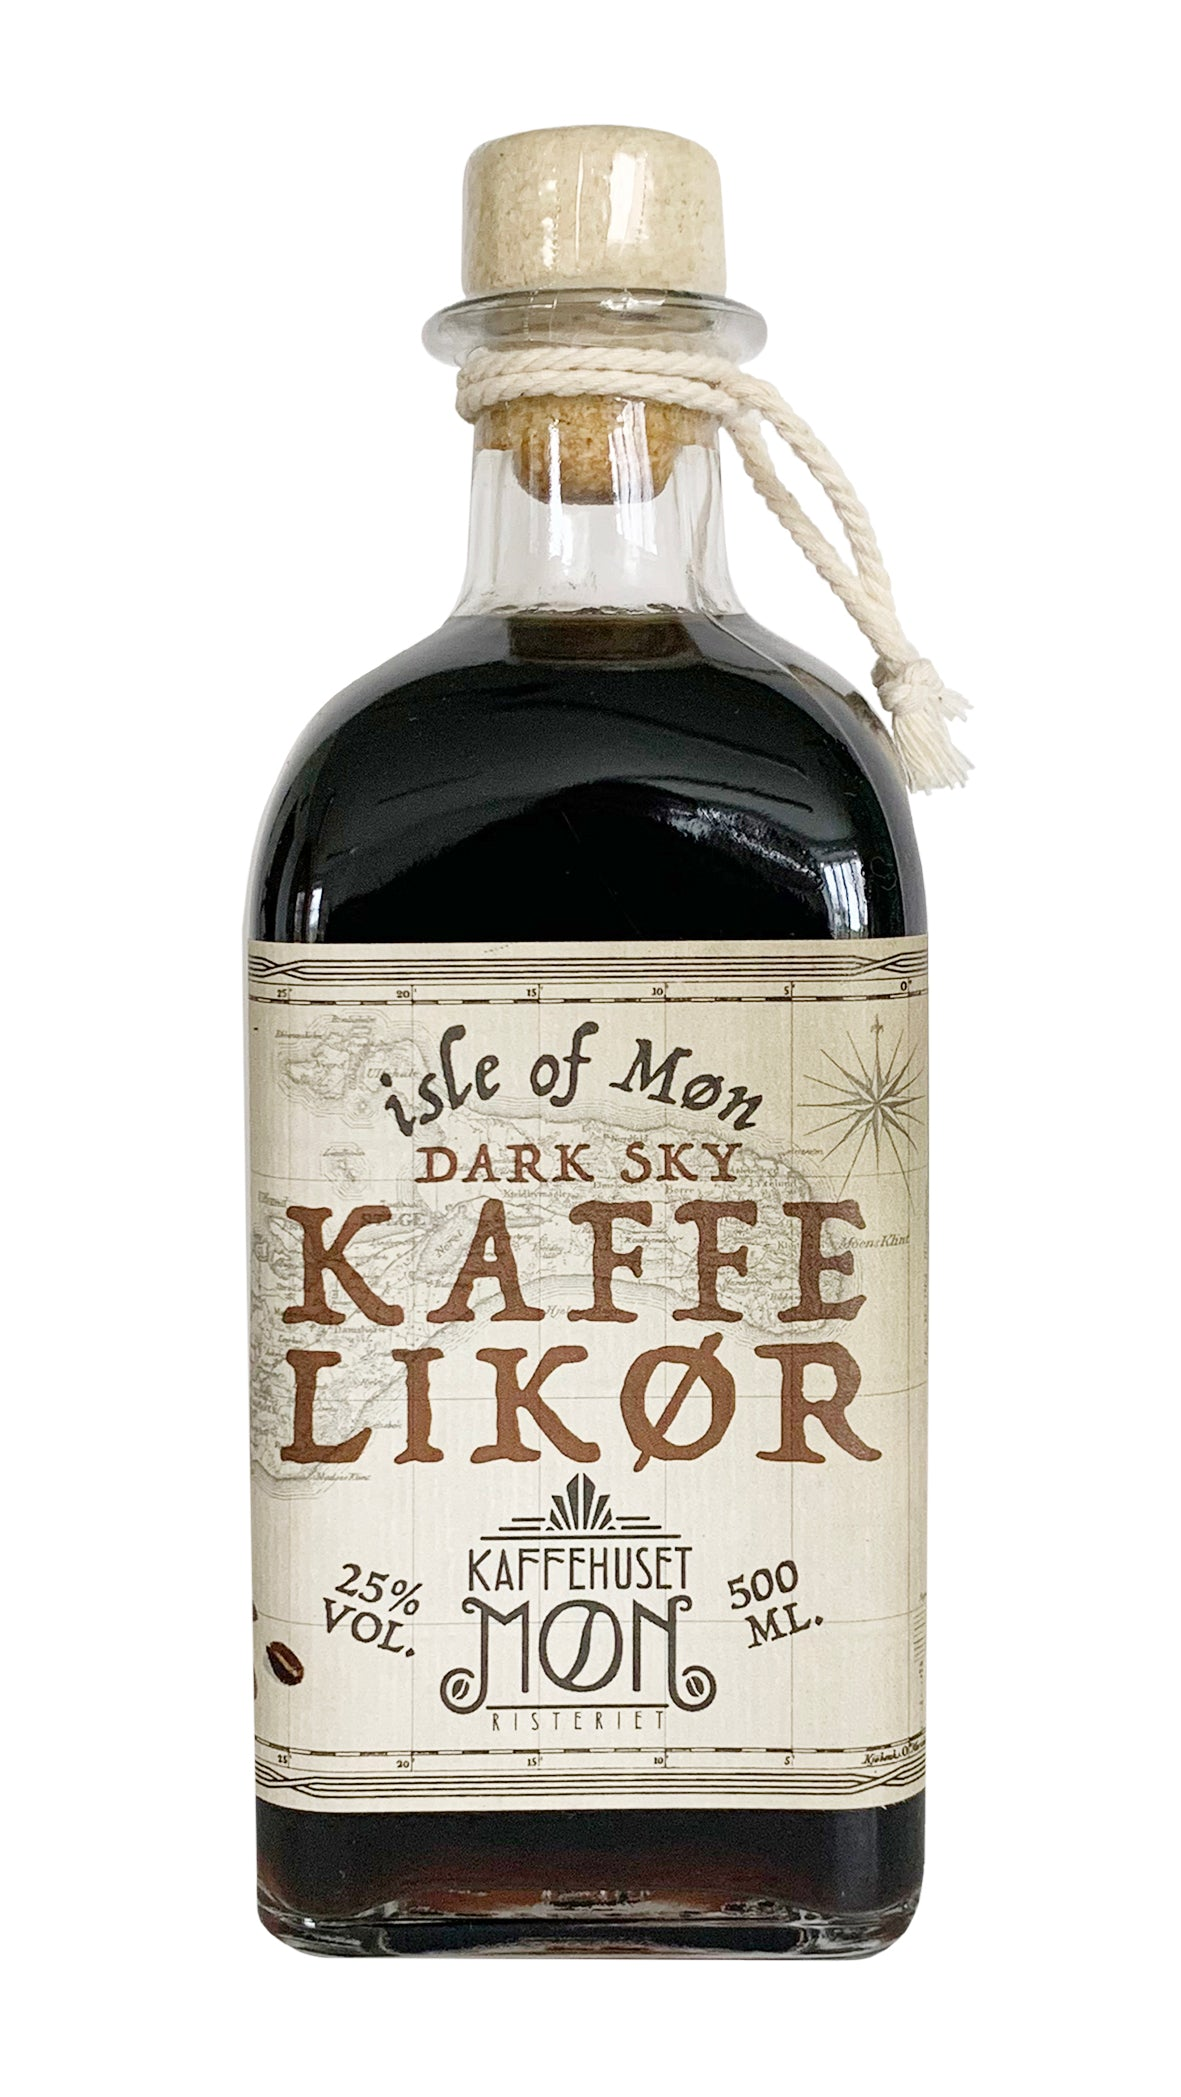 Isle of Møn Dark Sky Kaffelikør - Isle of Møn Spirits